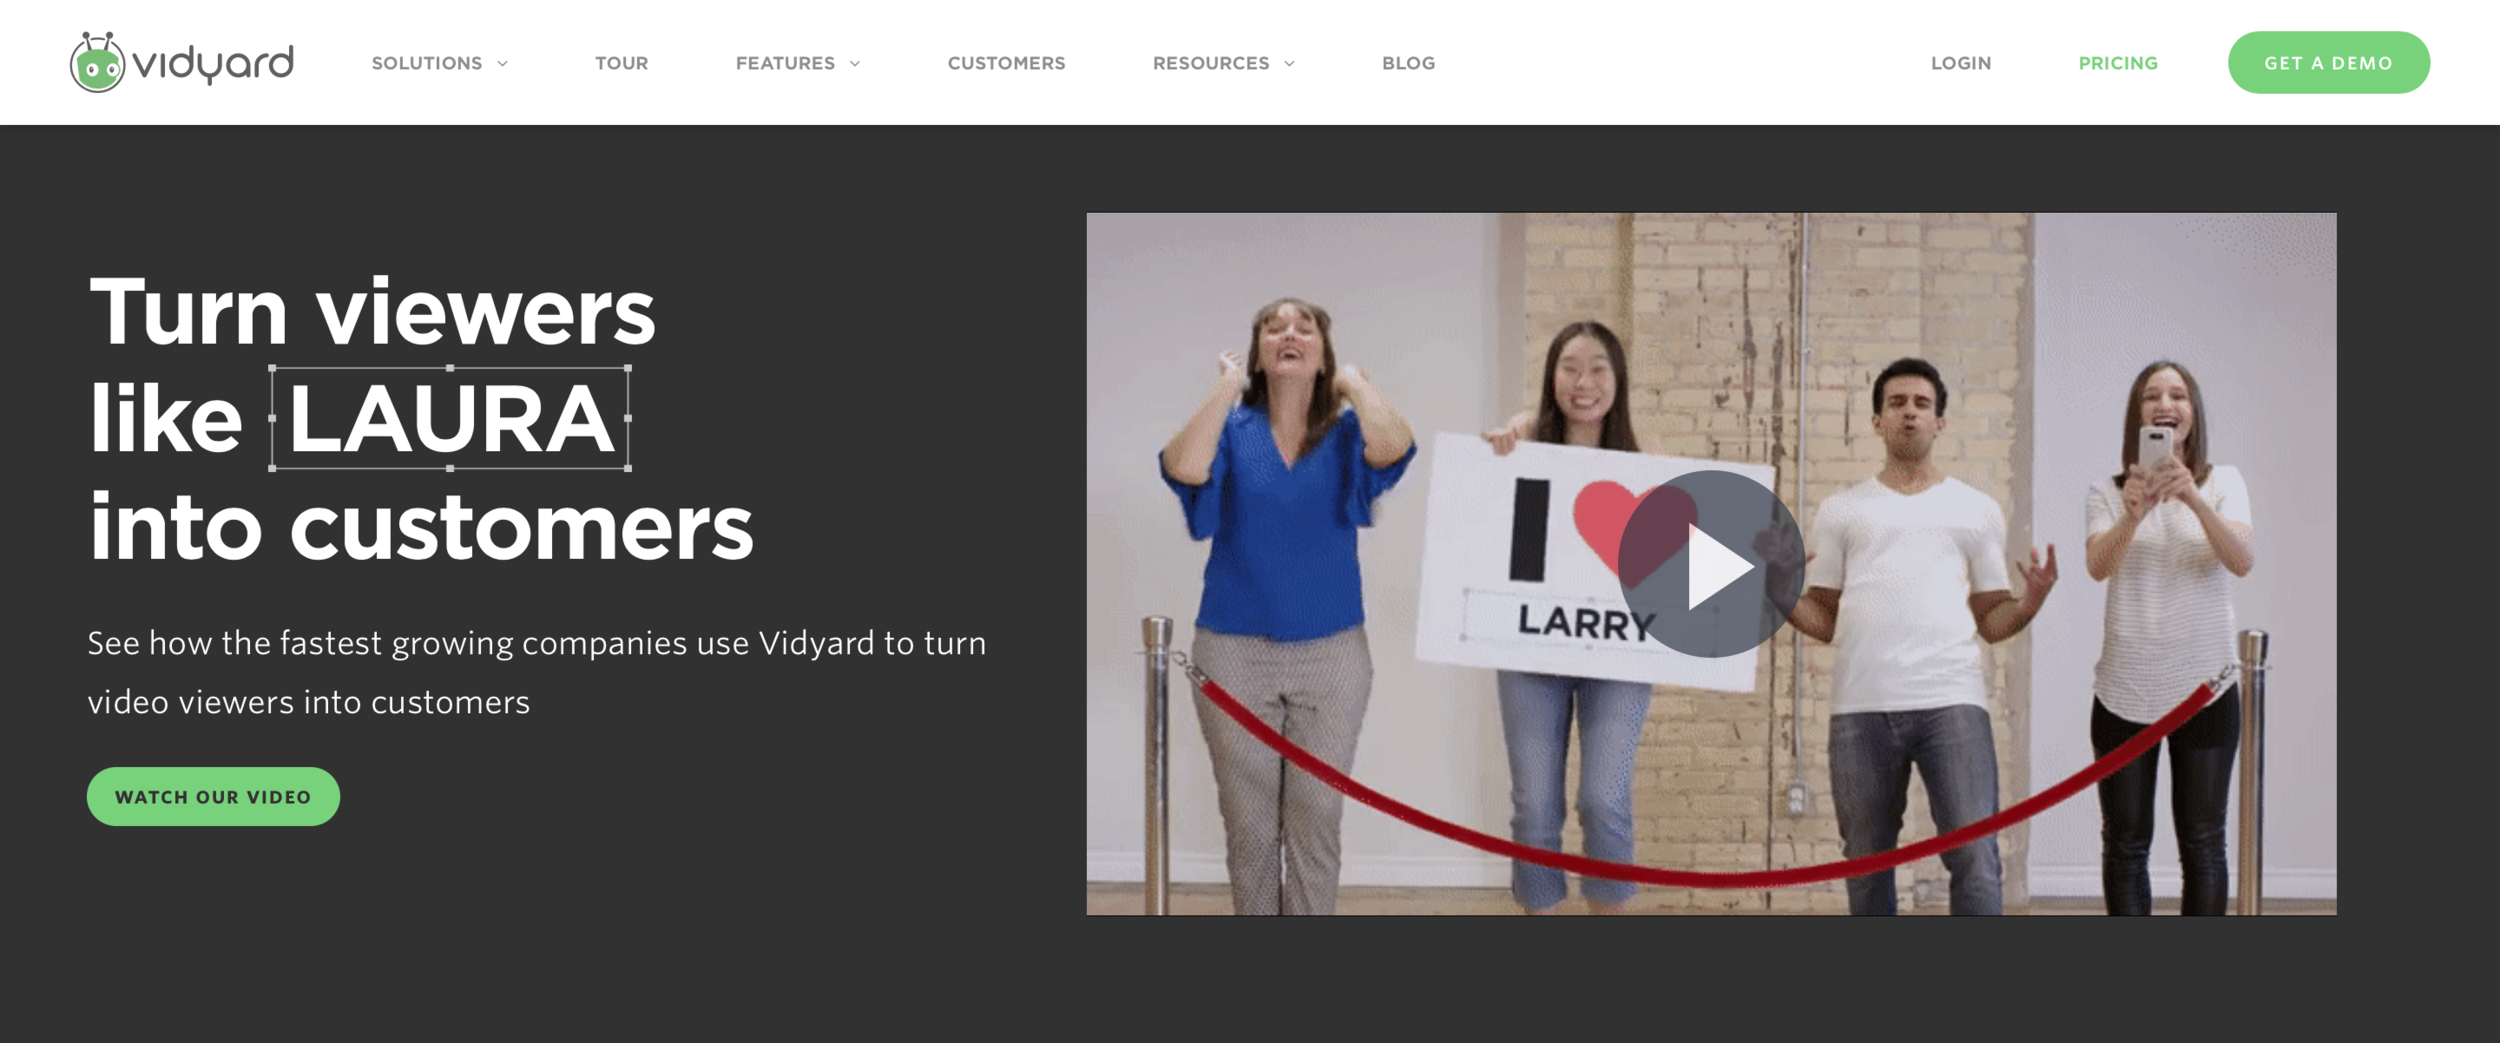 Vidyard_Video Marketing and Hosting